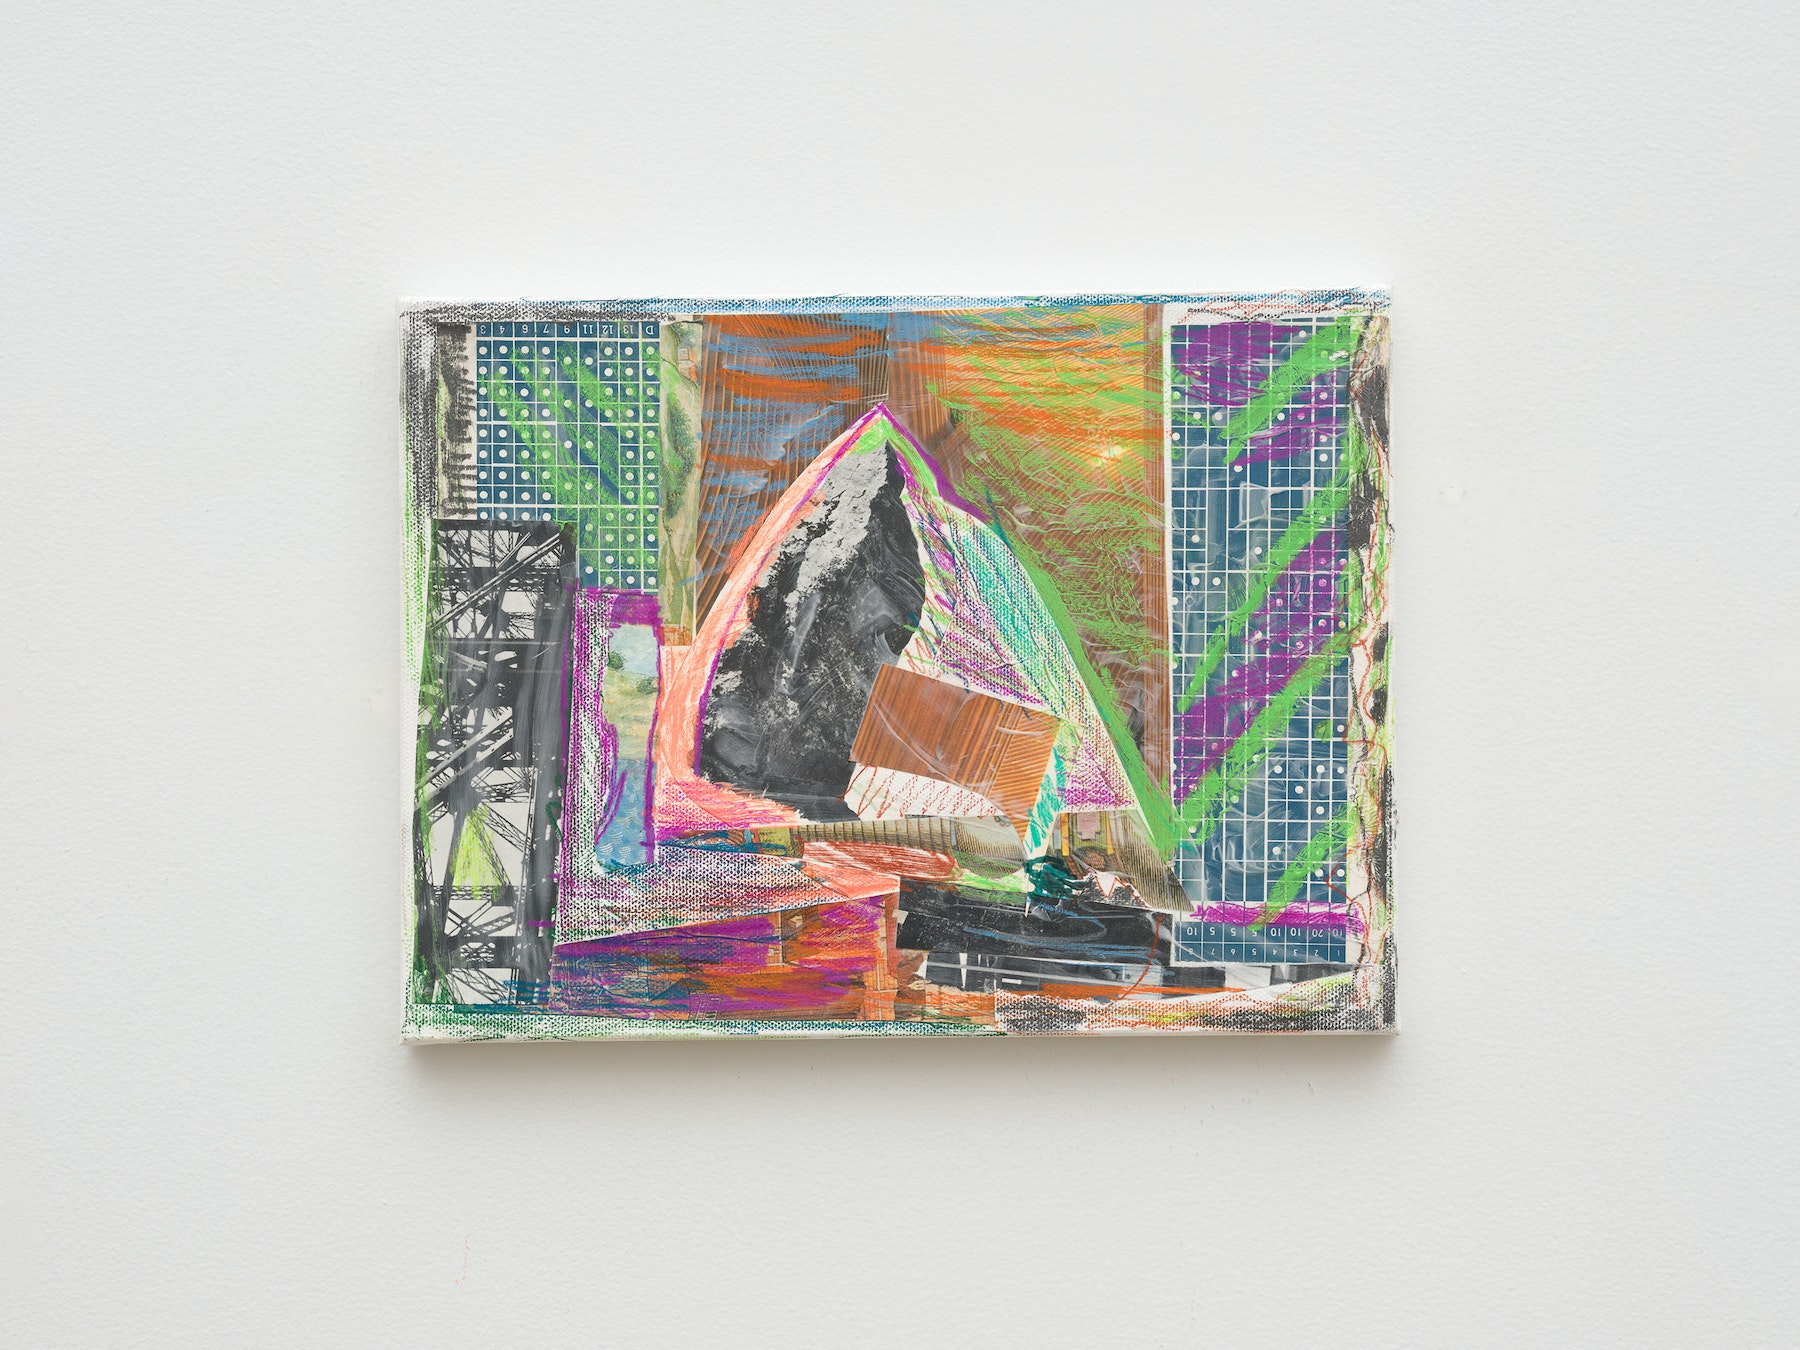 """Steve Roden """"space,"""" 2020 Mixed media on canvas 9"""" x 12"""" x 1"""" [HxWxD] (22.86 x 30.48 x 2.54 cm) Inventory #ROD705 Courtesy of the artist and Vielmetter Los Angeles Photo credit: Jeff McLane Signed and dated on the back"""